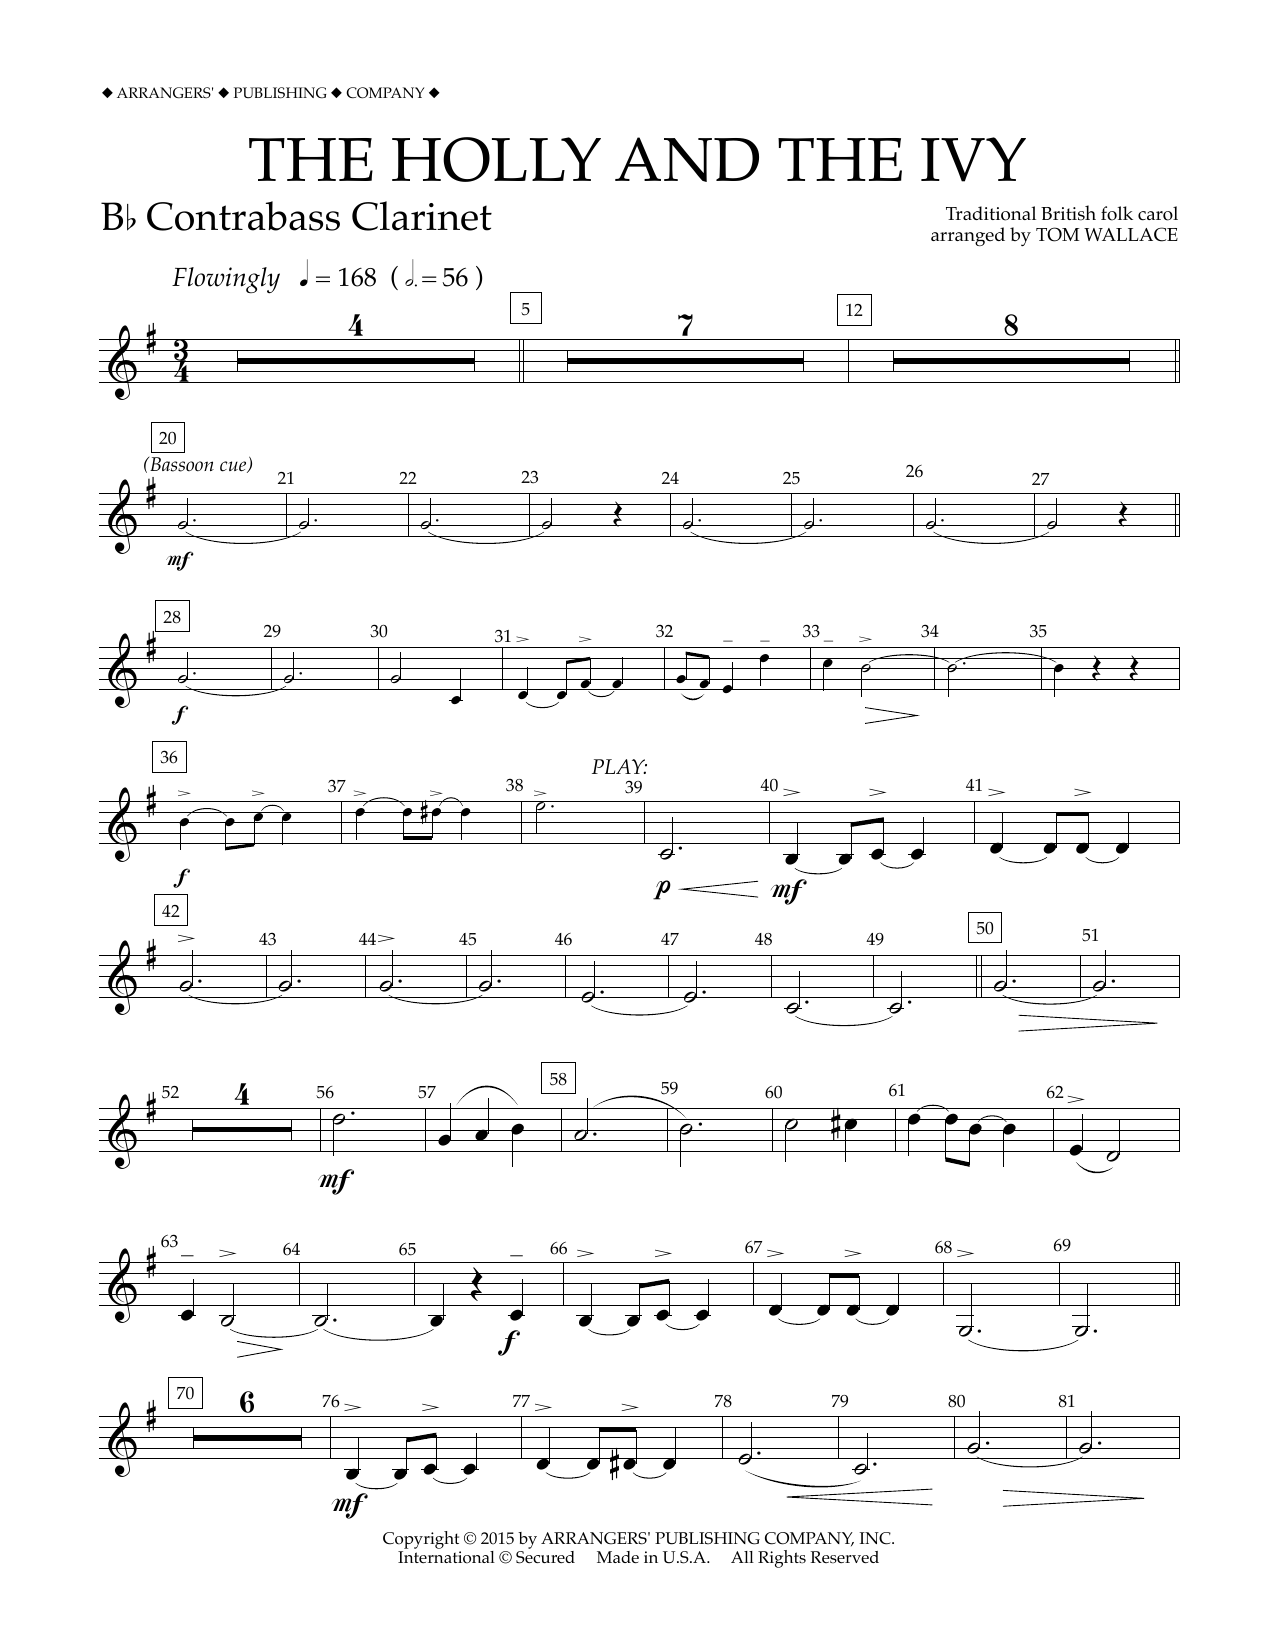 Tom Wallace The Holly and the Ivy - Bb Contrabass Clarinet sheet music notes and chords